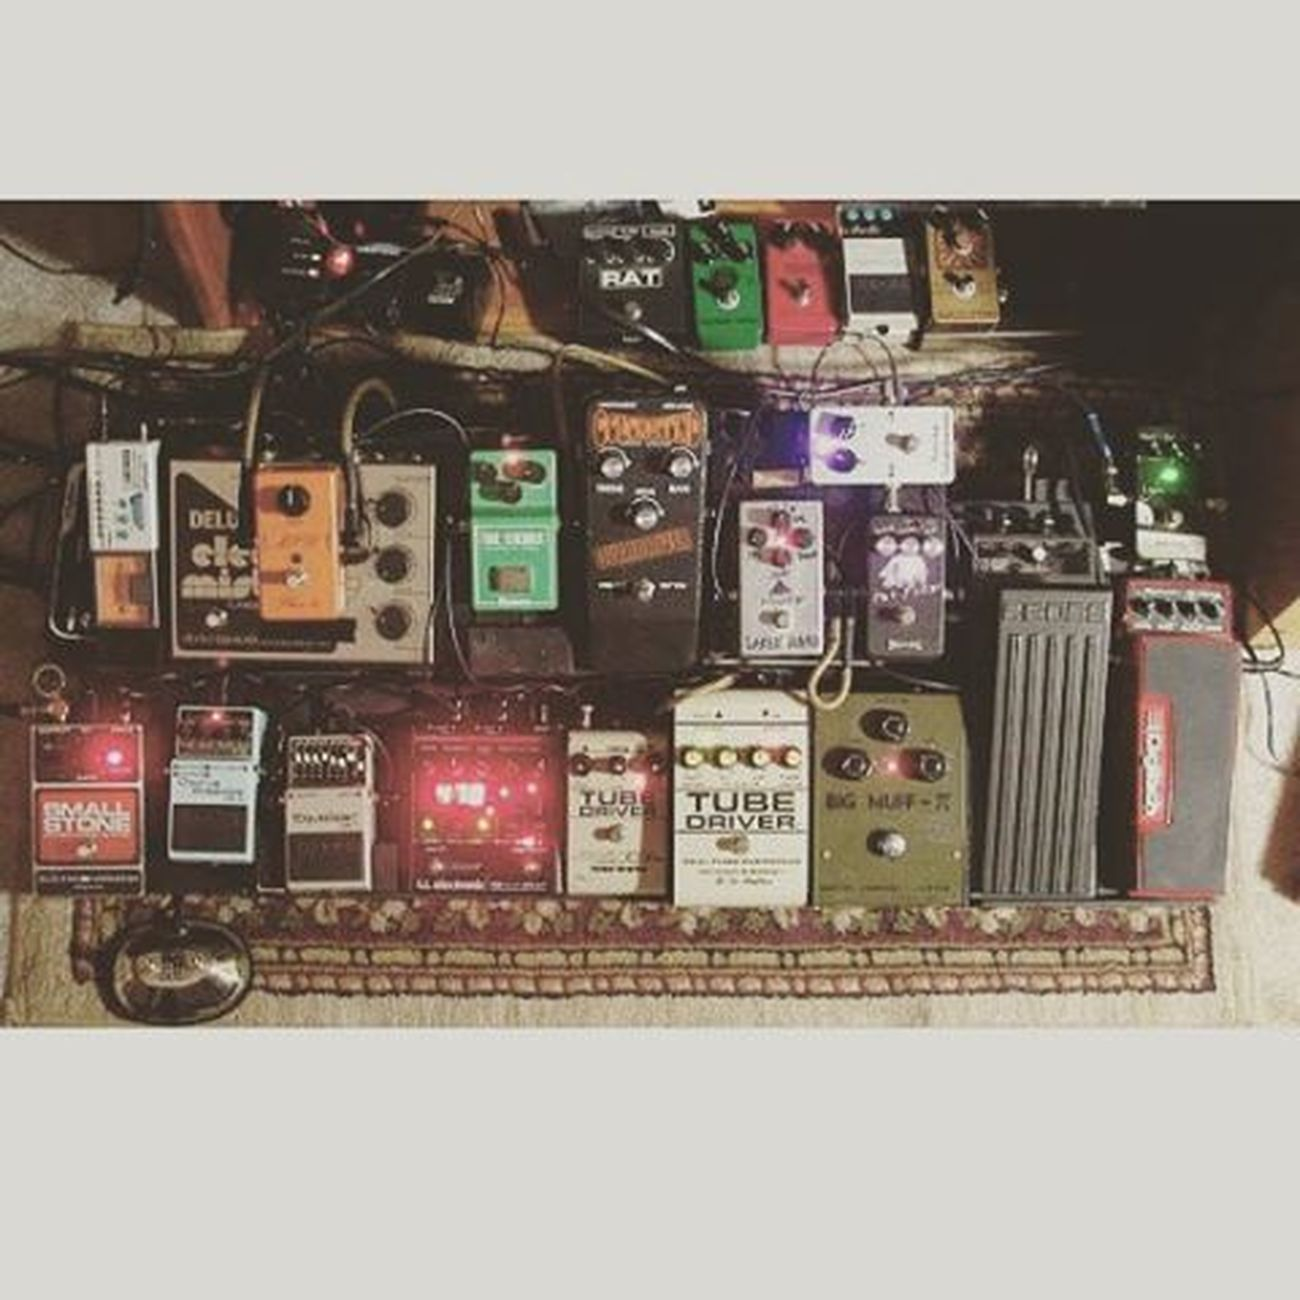 Super pedalboard Bigmuffusa MXR Dynacompressor Memoryman Phase90 Civilwar Boss Cs2 Fender Gilmour Music Soundofsound Soundreturn Seymourduncan Like Likeforlike Recentforrecent Photooftheday Picoftheday